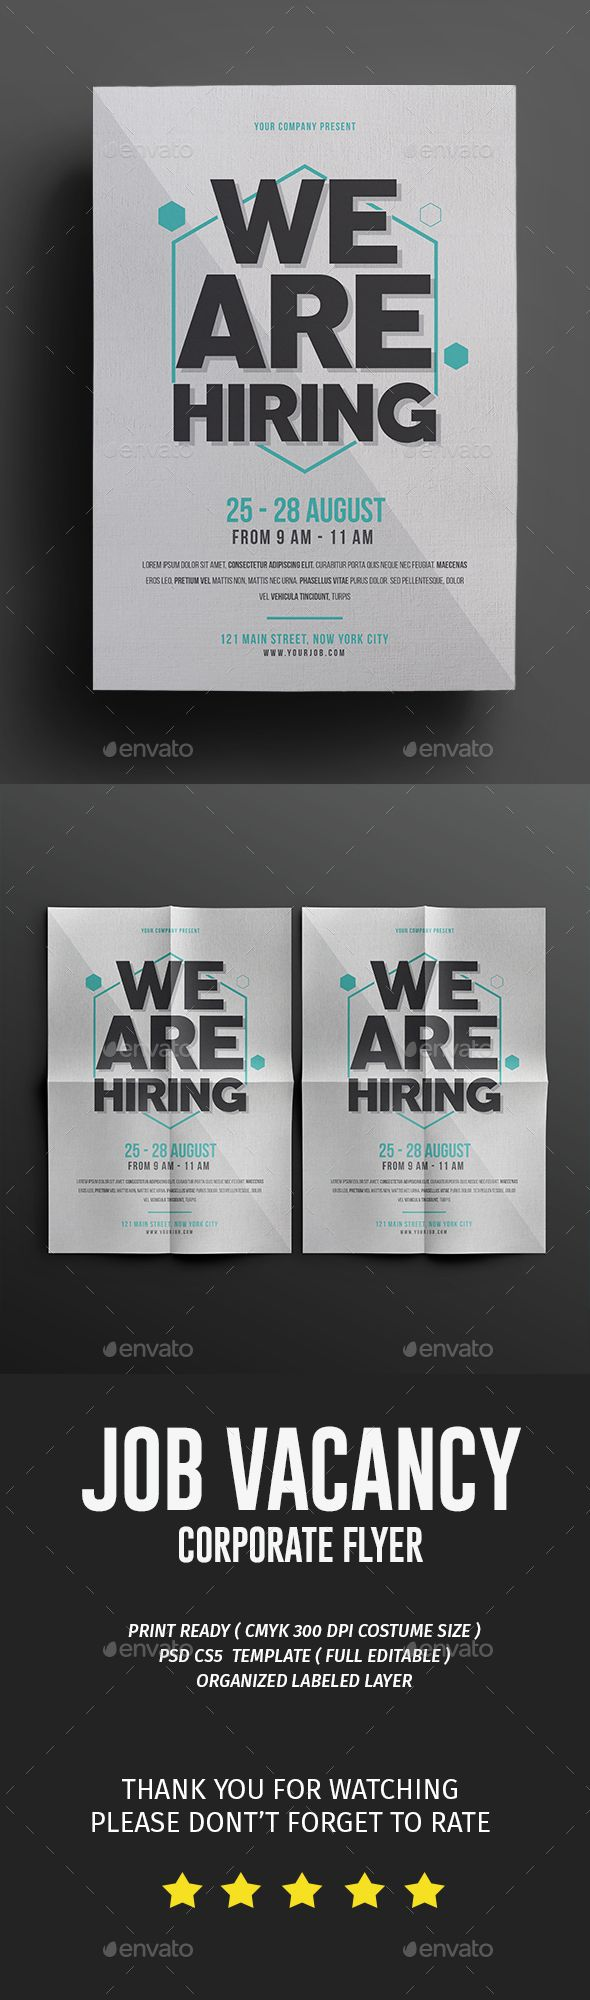 job fair flyer flyer template psd flyer templates and job fair job fair psd flyer template only available here 10141 graphicriver